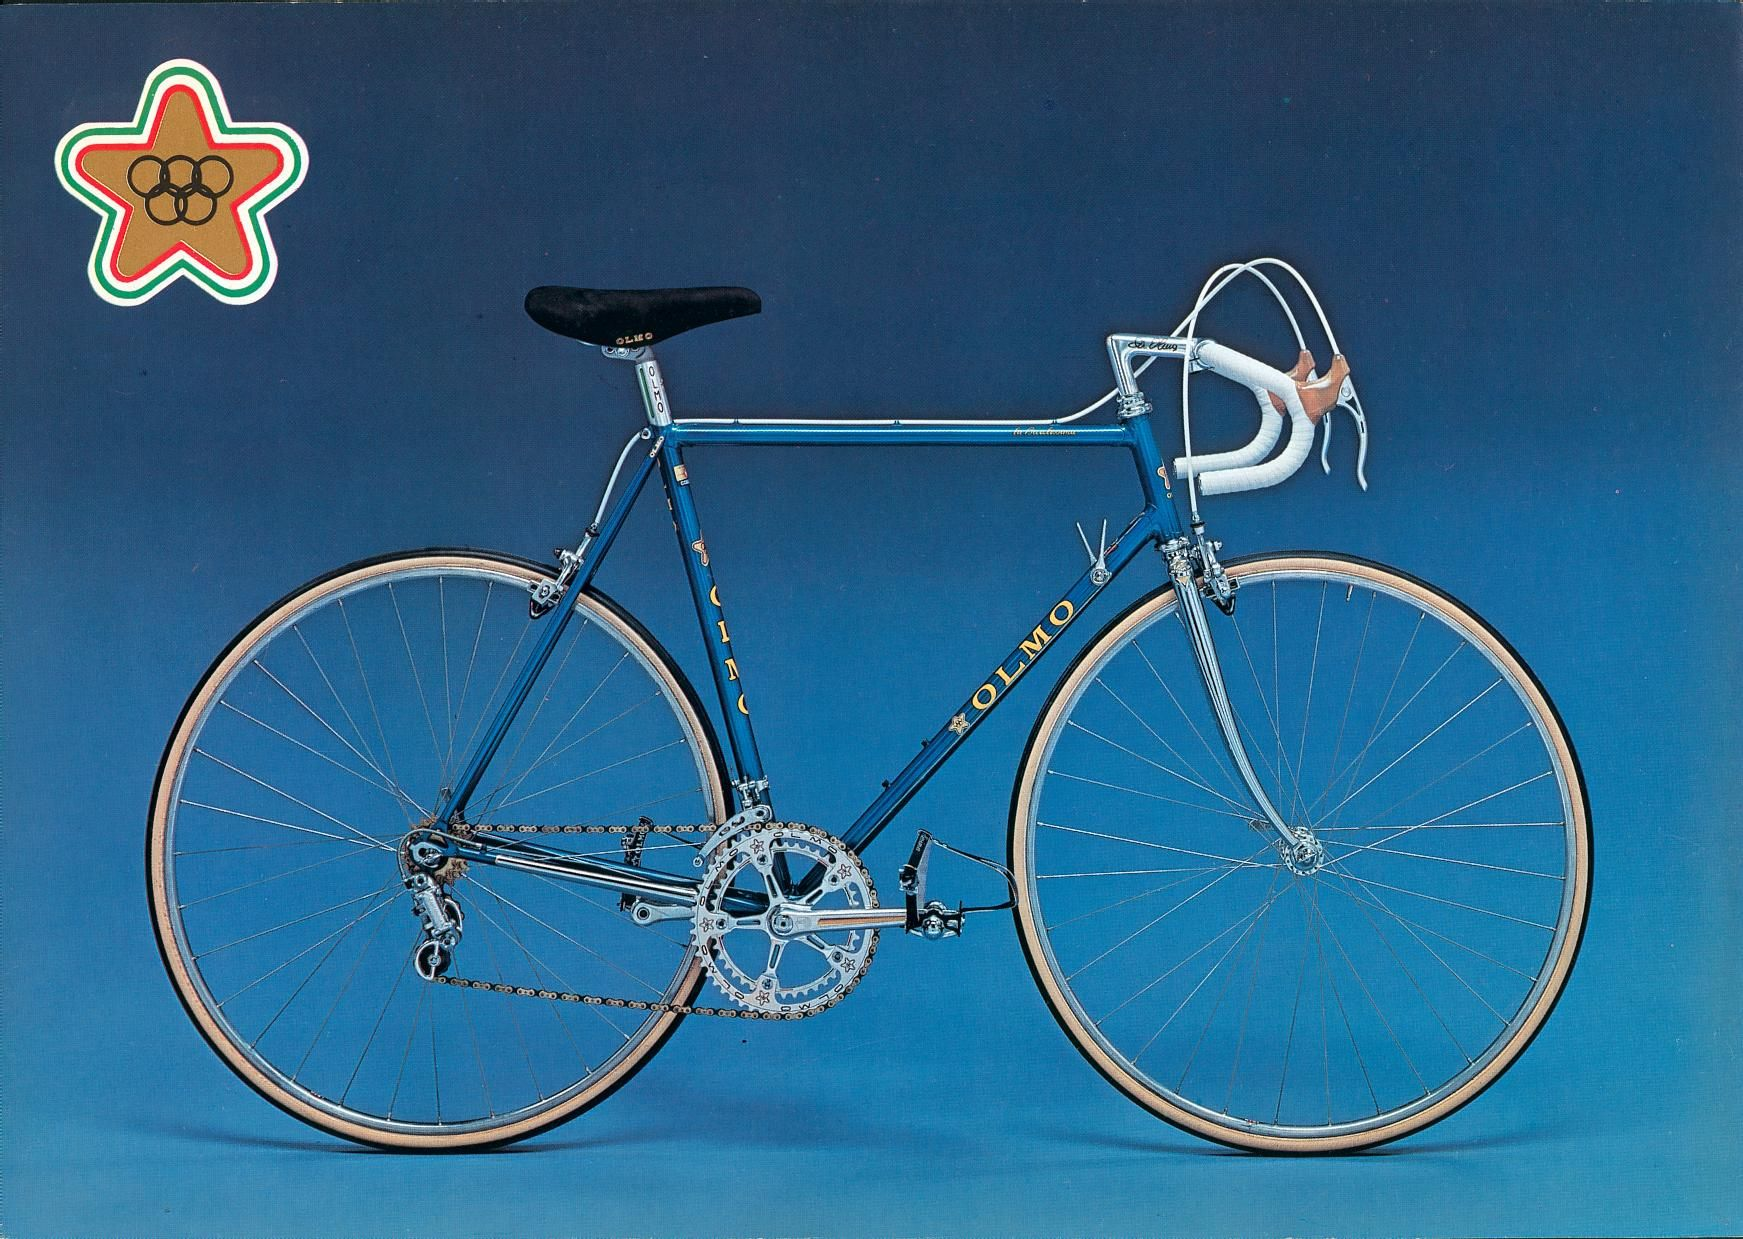 My Olmo Competition Year Classic Road Bike Bike Swag Retro Bicycle